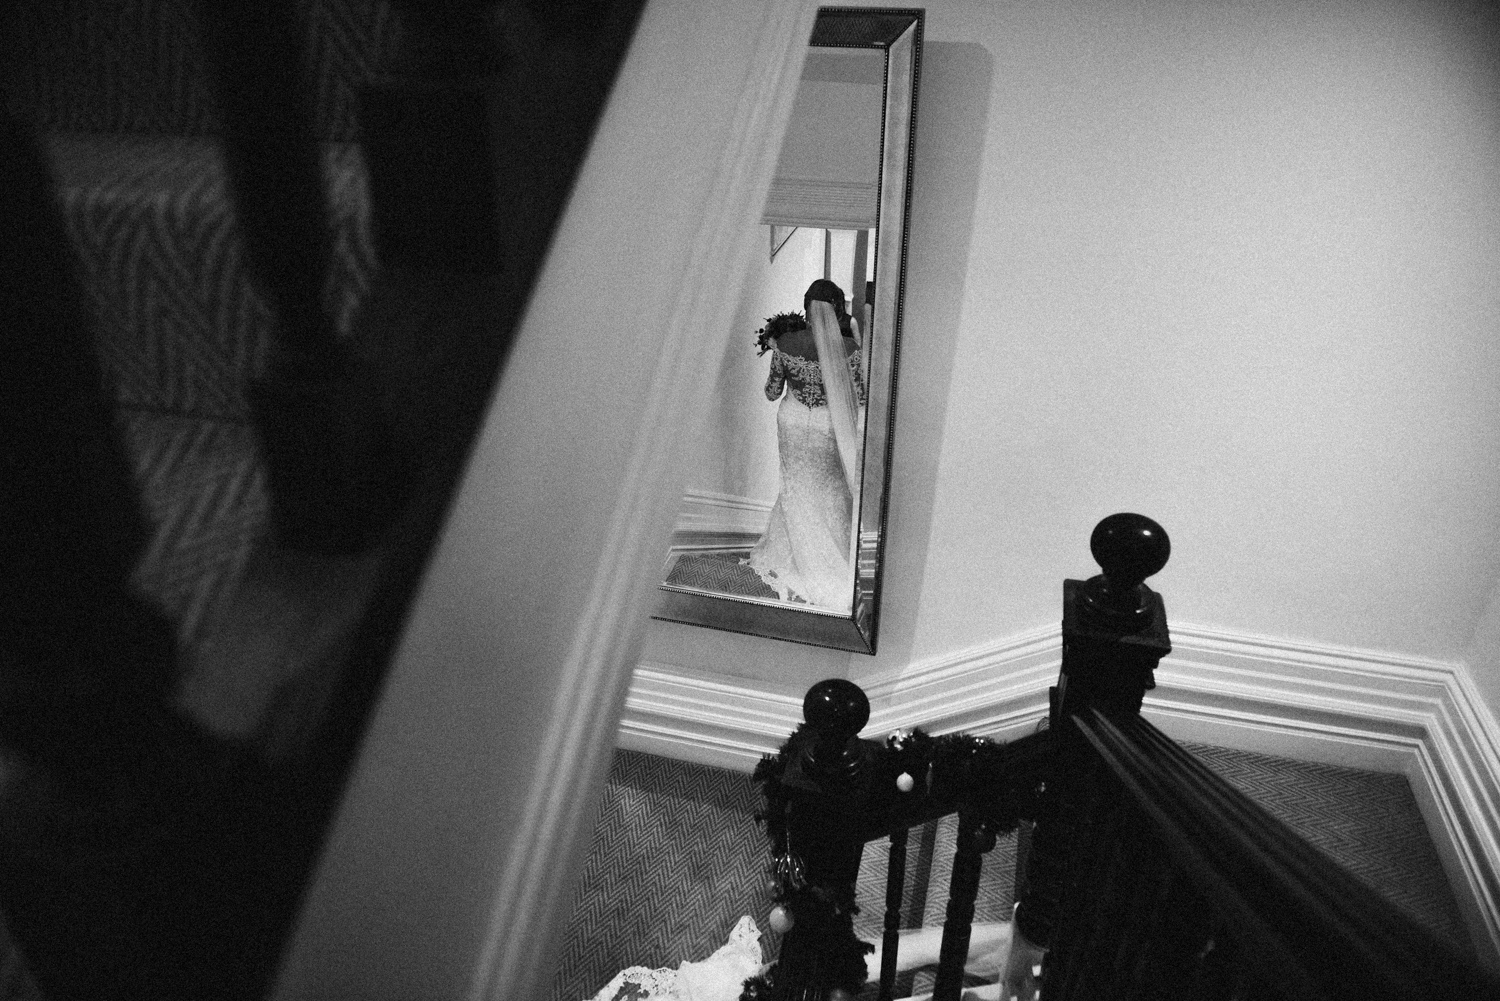 beautiful black and whitr photograph of the bride